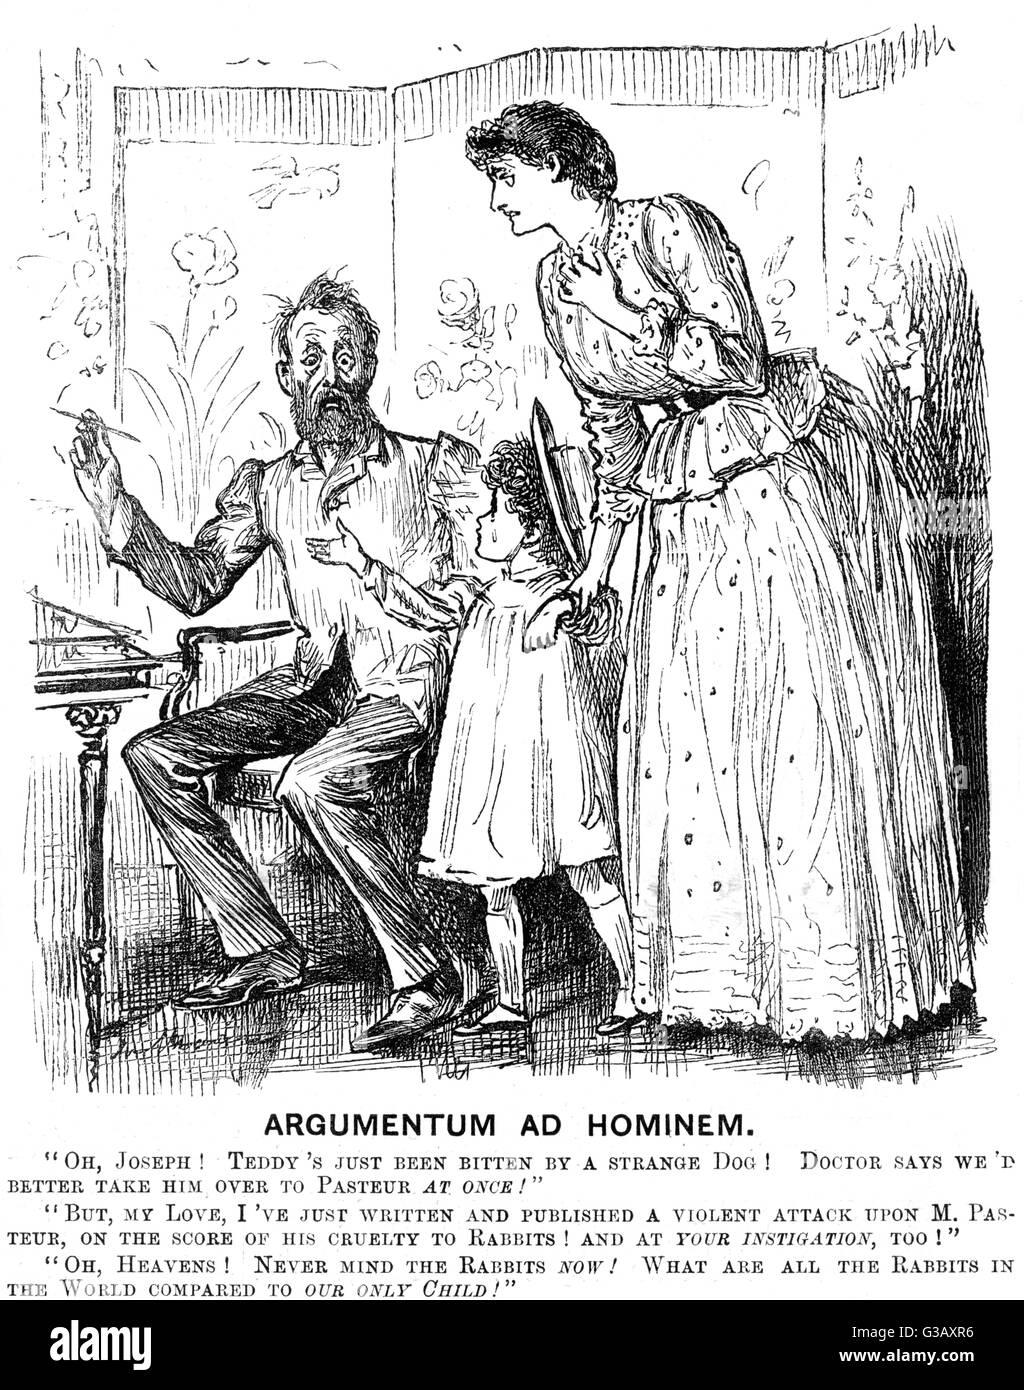 A moral dilemma. Satire on the ethics of  Louis Pasteur's experiments on  animals.      Date: 1889 - Stock Image